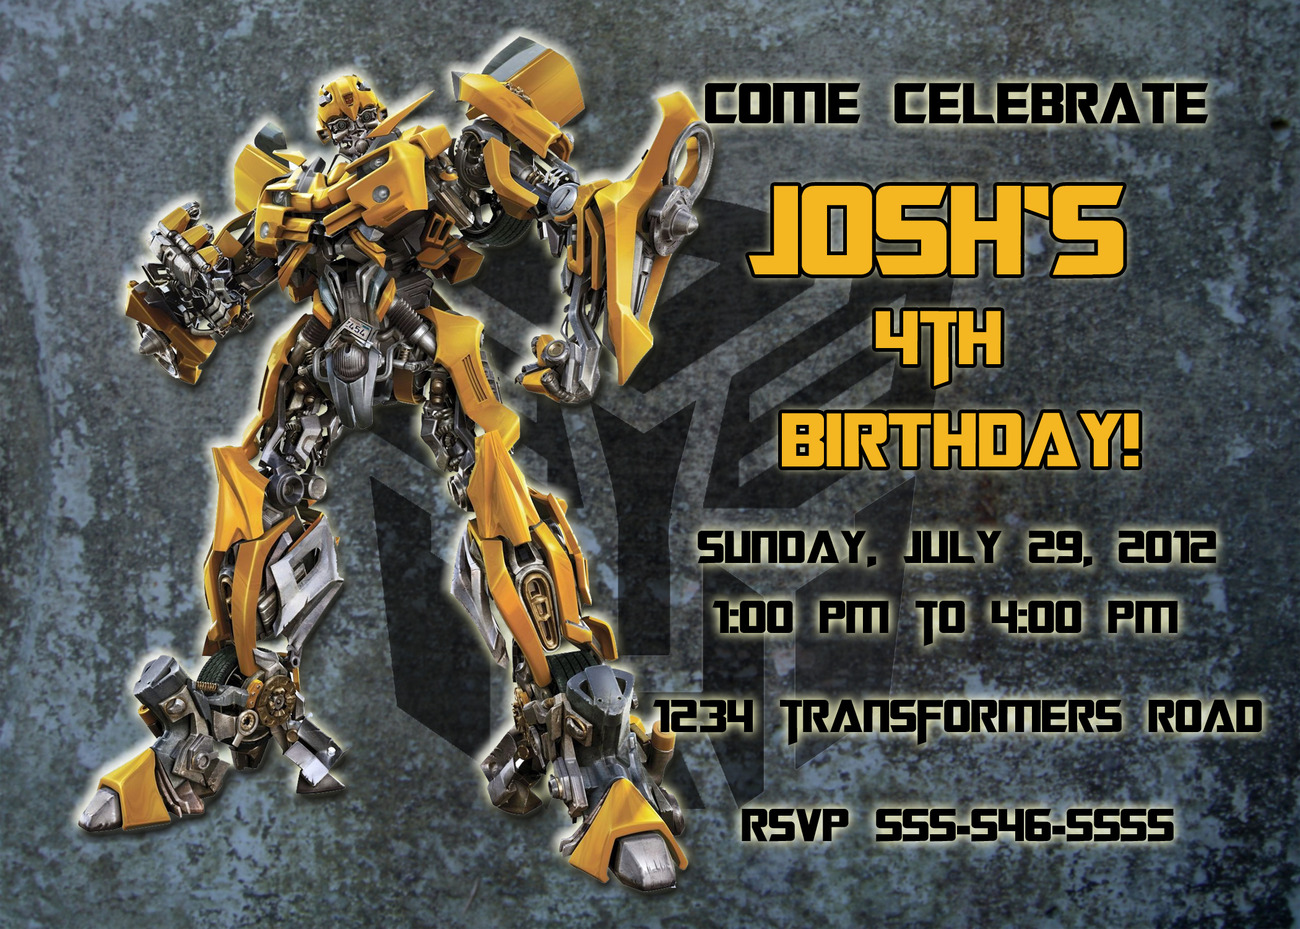 Transformer Birthday Invitations is an amazing ideas you had to choose for invitation design